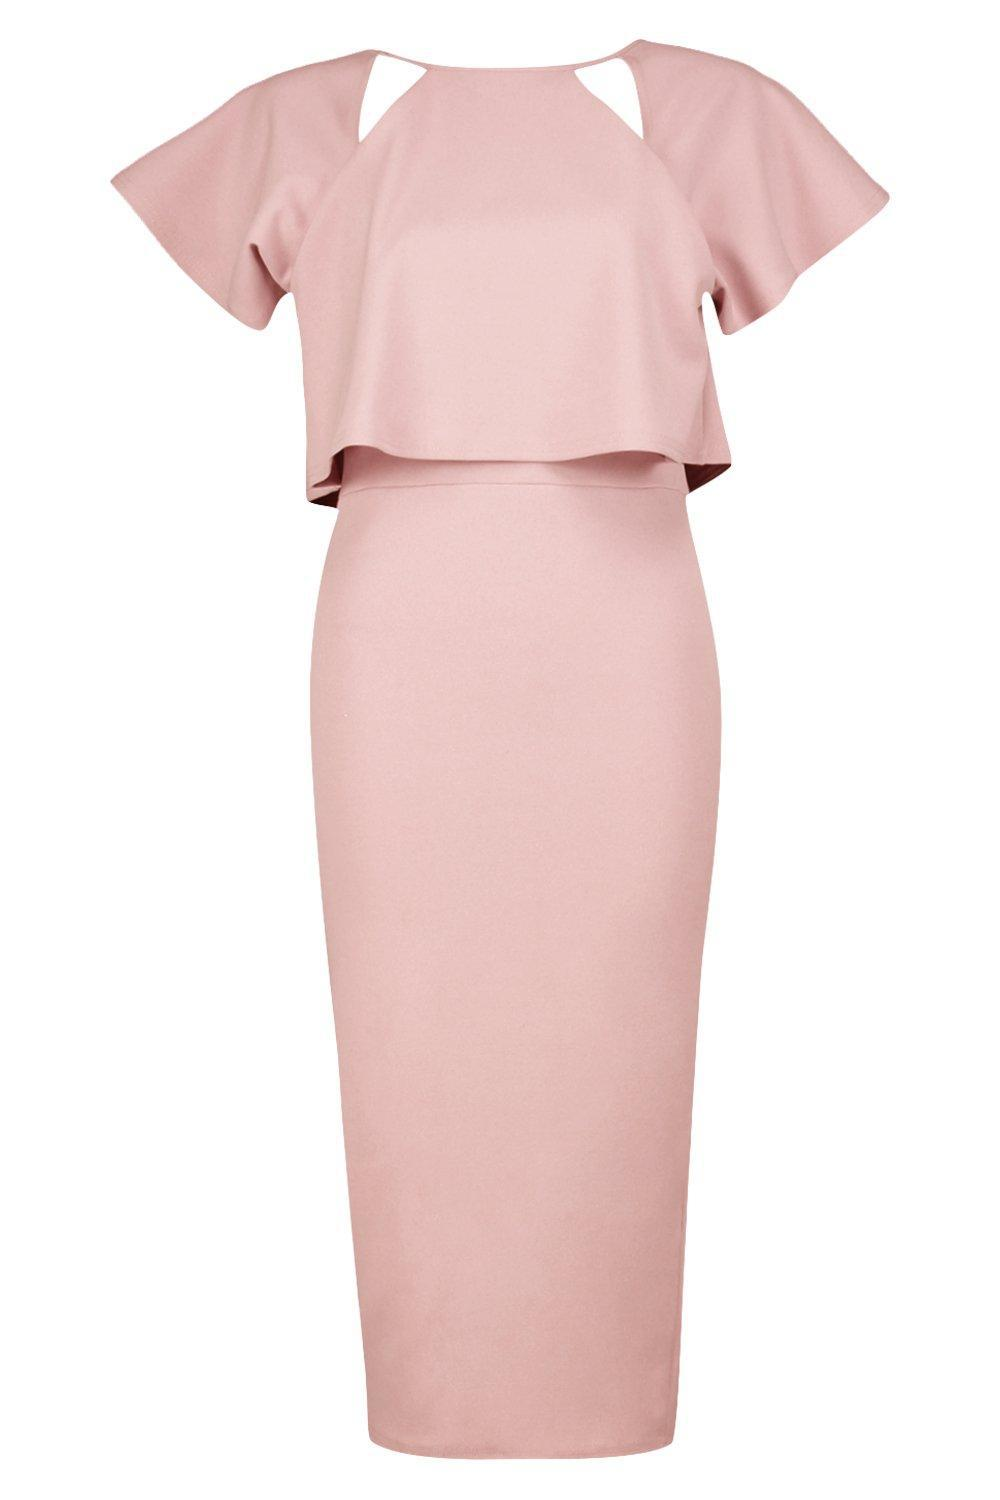 6f1cb15421f1 Boohoo Formal Frill Double Layer Midi Dress in Pink - Lyst